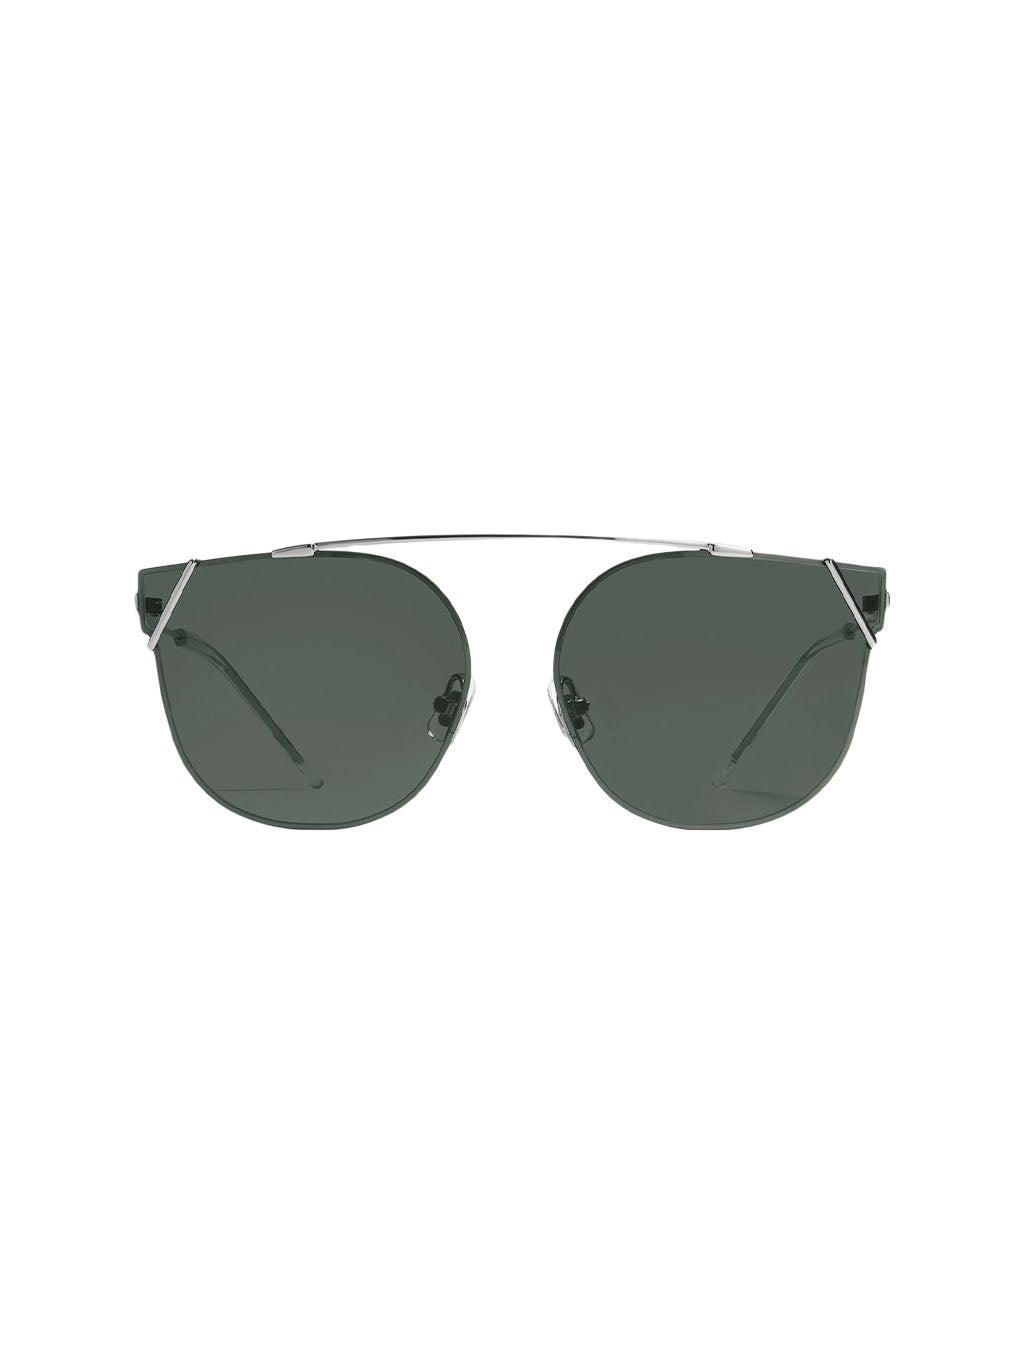 Silver & Dark Green RINGA 02 Sunglasses